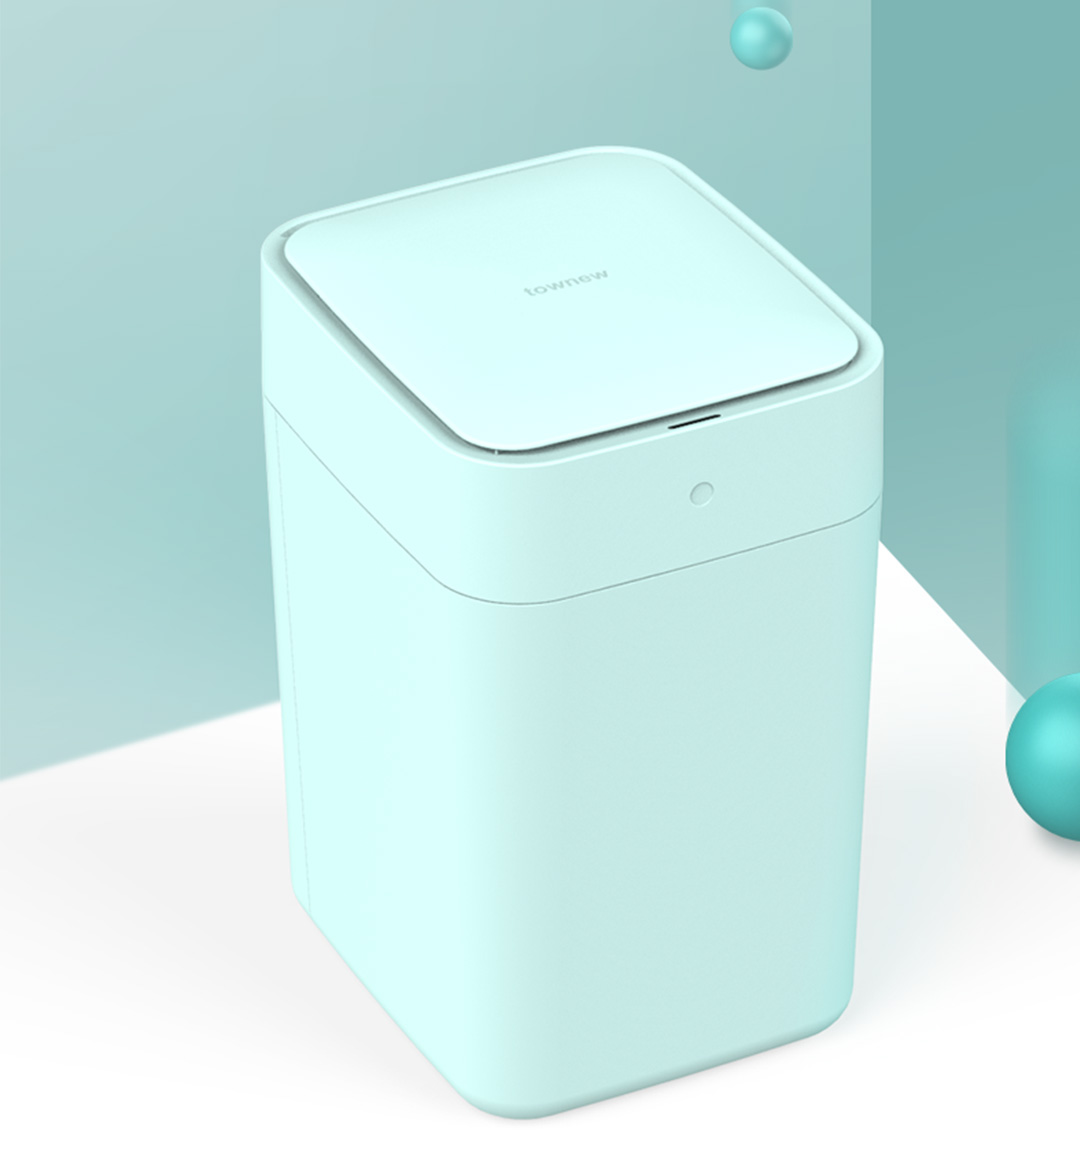 Townew Smart Bin T1 International Edition